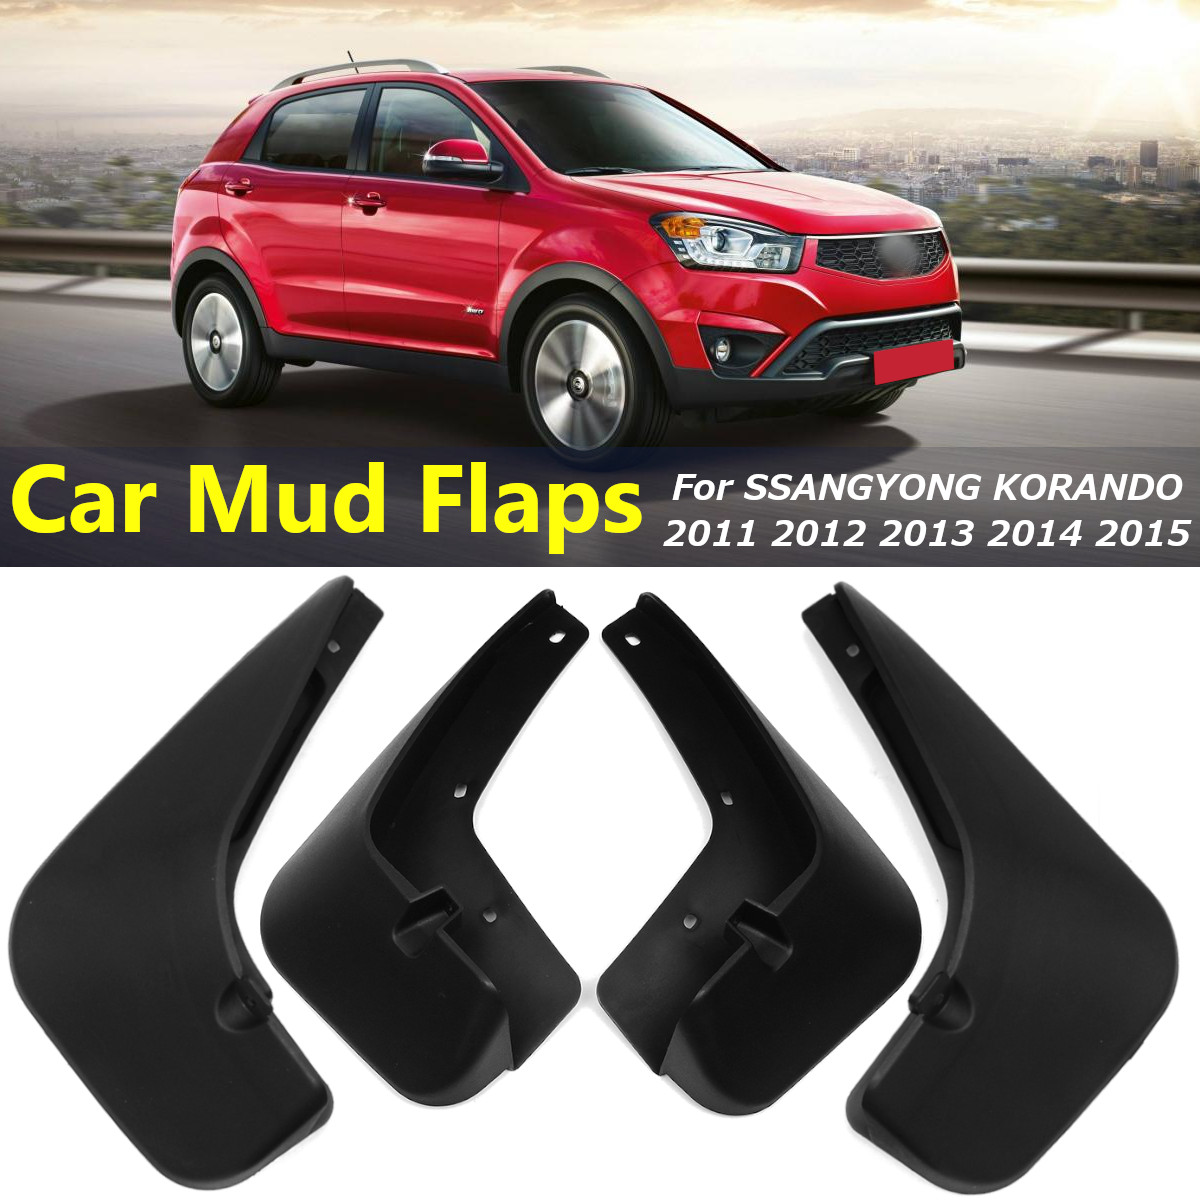 4pcs Car Accessories Fender Mud Flaps Splash Guards Mudguards Mudflaps for SsangYong KORANDO ACTYON C200 2011-2015 image